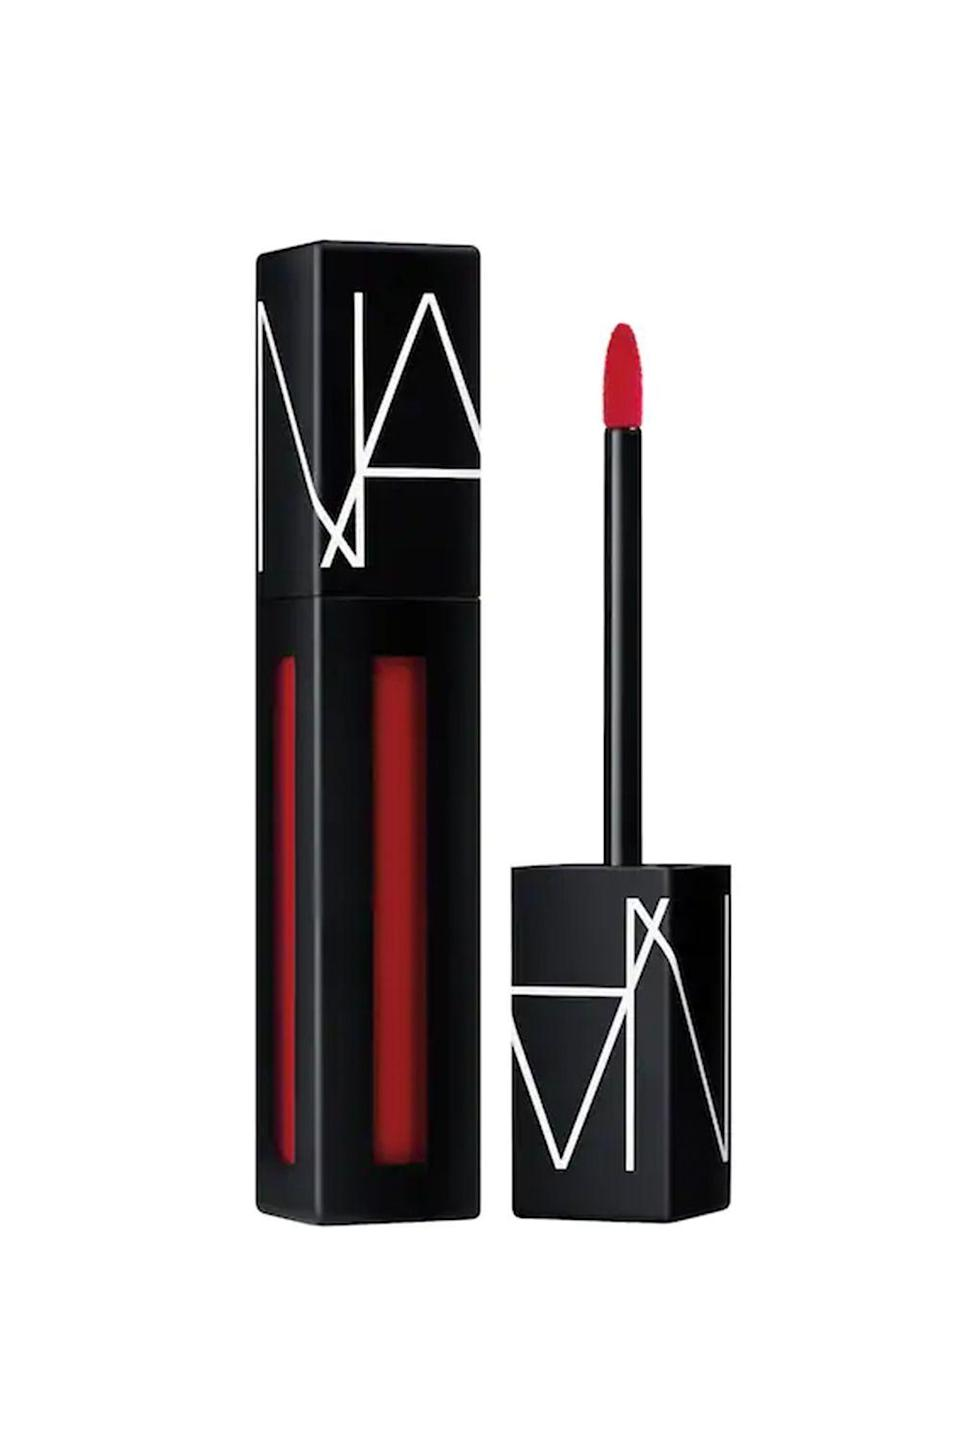 "<p><strong>NARS</strong></p><p>sephora.com</p><p><strong>$26.00</strong></p><p><a href=""https://go.redirectingat.com?id=74968X1596630&url=https%3A%2F%2Fwww.sephora.com%2Fproduct%2Fpowermatte-lip-pigment-P421485&sref=https%3A%2F%2Fwww.oprahmag.com%2Fbeauty%2Fskin-makeup%2Fg34963135%2Fbest-red-lipsticks%2F"" rel=""nofollow noopener"" target=""_blank"" data-ylk=""slk:Shop Now"" class=""link rapid-noclick-resp"">Shop Now</a></p><p>Nars has always been famous for its highly-pigmented lip colors (in fact, the brand started in 1994 with just 12 lipsticks), so it's no wonder that two of its bestselling products made it onto this list. More like a stain than a cream, the Powermatte Lip Pigment—which is beloved by Gonzalez—swipes on super easily (thanks to the pointy doe-foot applicator), feels extremely lightweight, and will not budge from breakfast to bedtime.<br></p>"